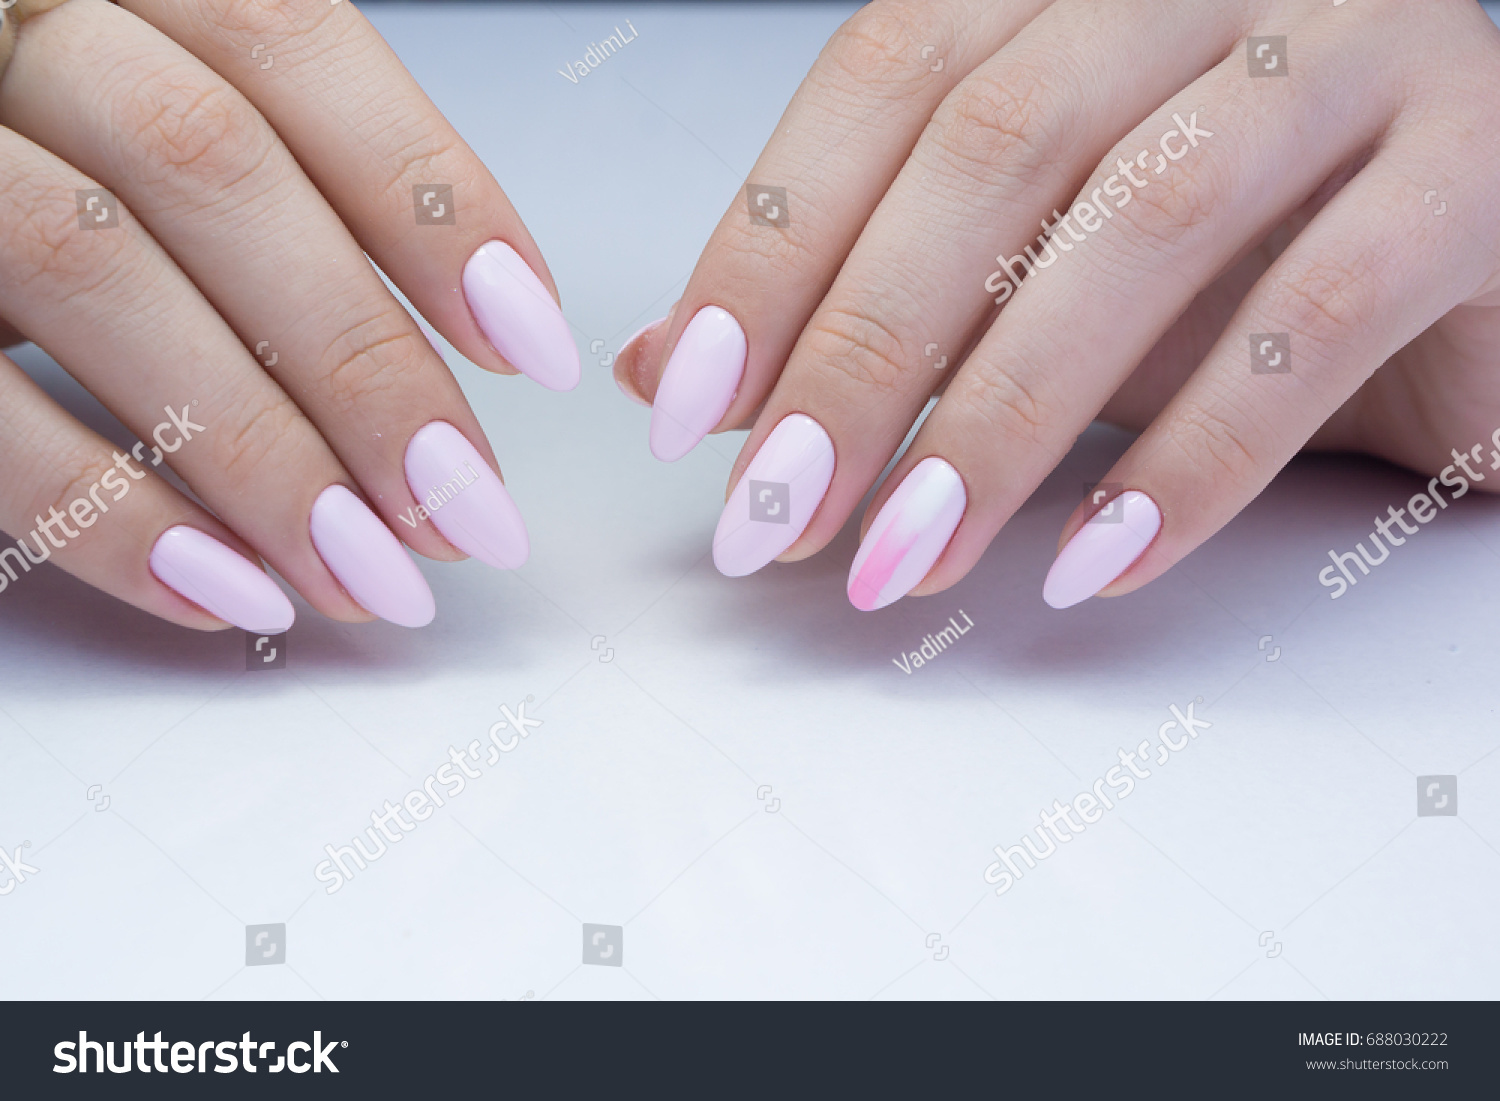 Beautiful Natural Nails Clean Manicure Nail Stock Photo (Edit Now ...